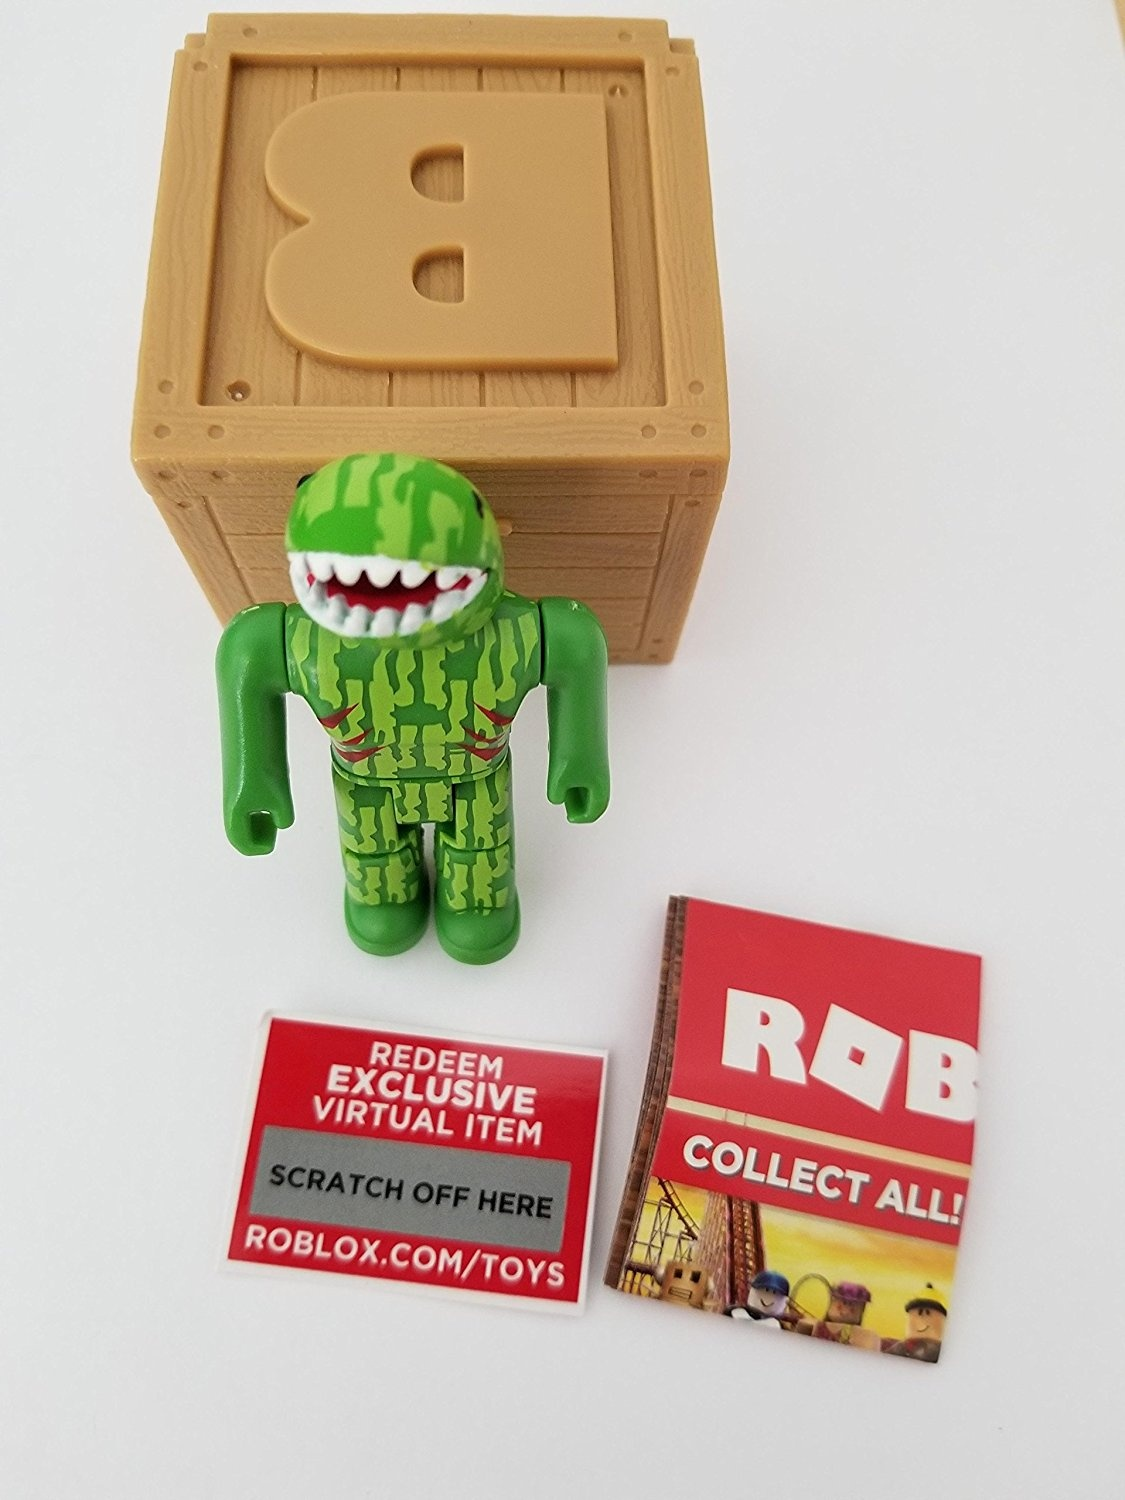 Roblox Series 2 Sharksie Action Figure Mystery Box Virtual Item